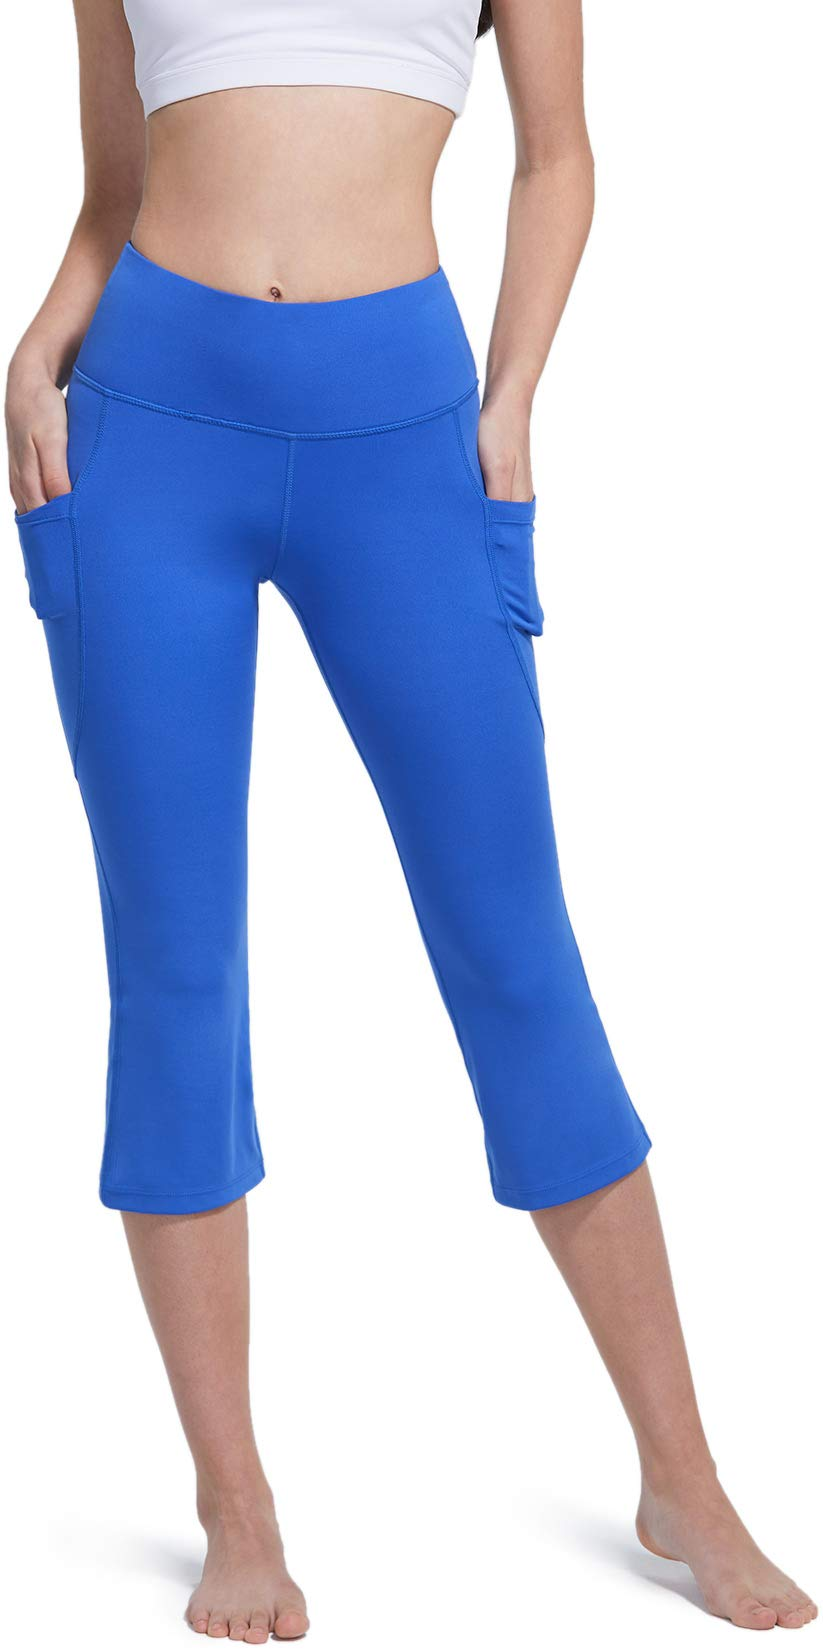 TSLA Women's Yoga Loungewear Capri Tapered Comfy Soft Running Casual Yoga Active with Pockets